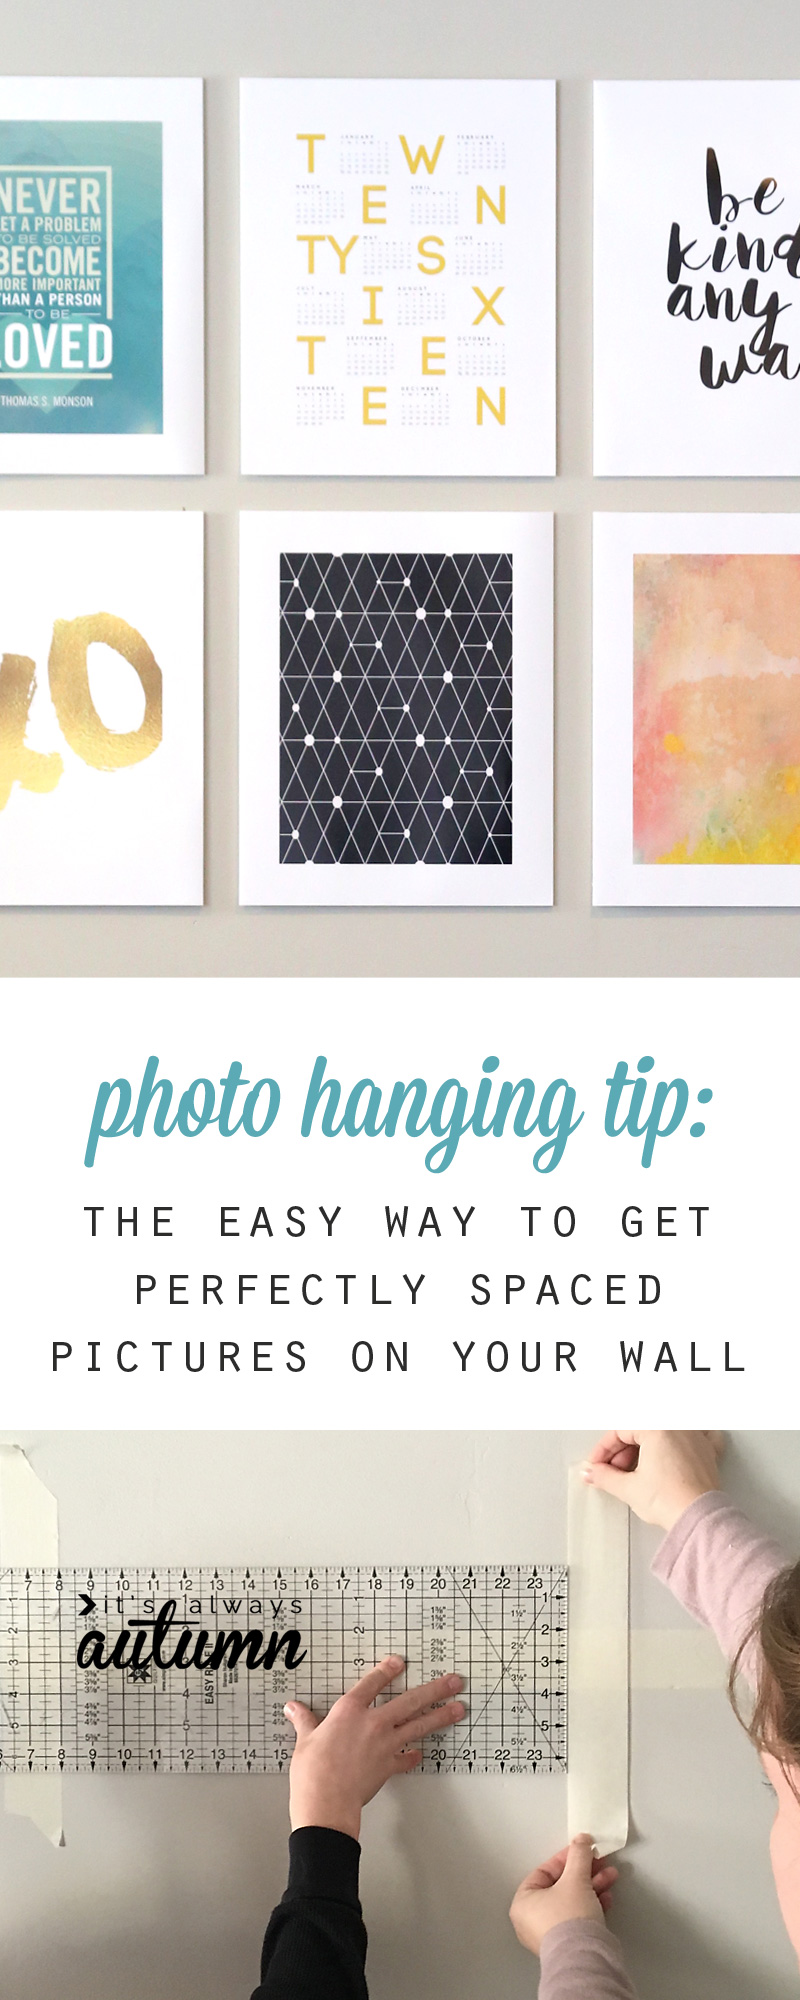 Use this easy tip to space pictures on your wall perfectly! No more hammering in a bunch of nails trying to get things straight!